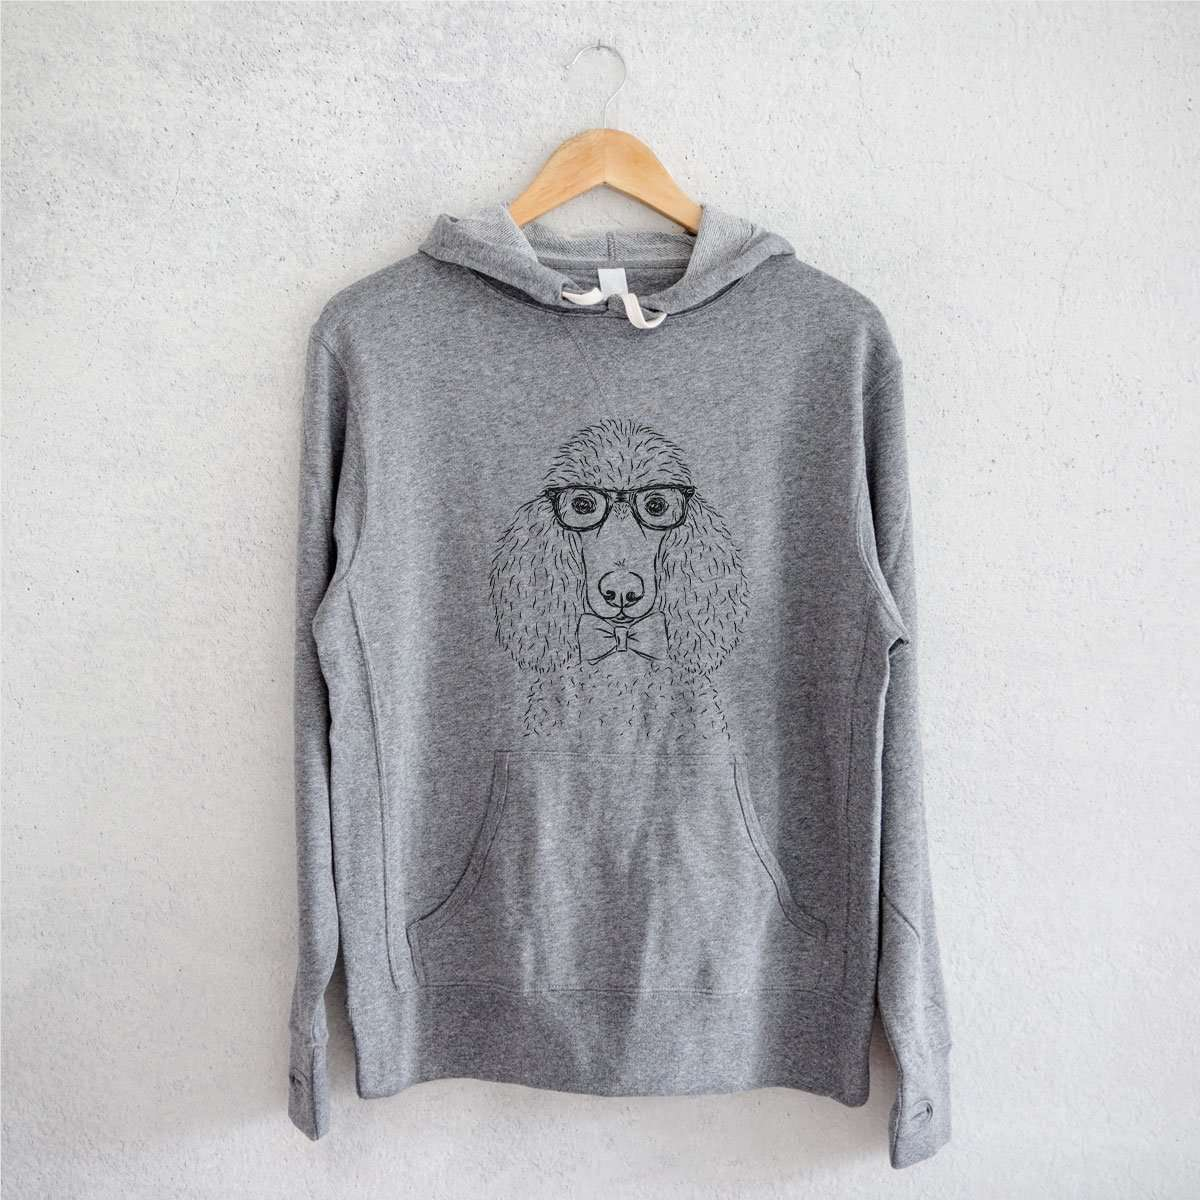 Gio the Handsome Poodle - Grey French Terry Hooded Sweatshirt